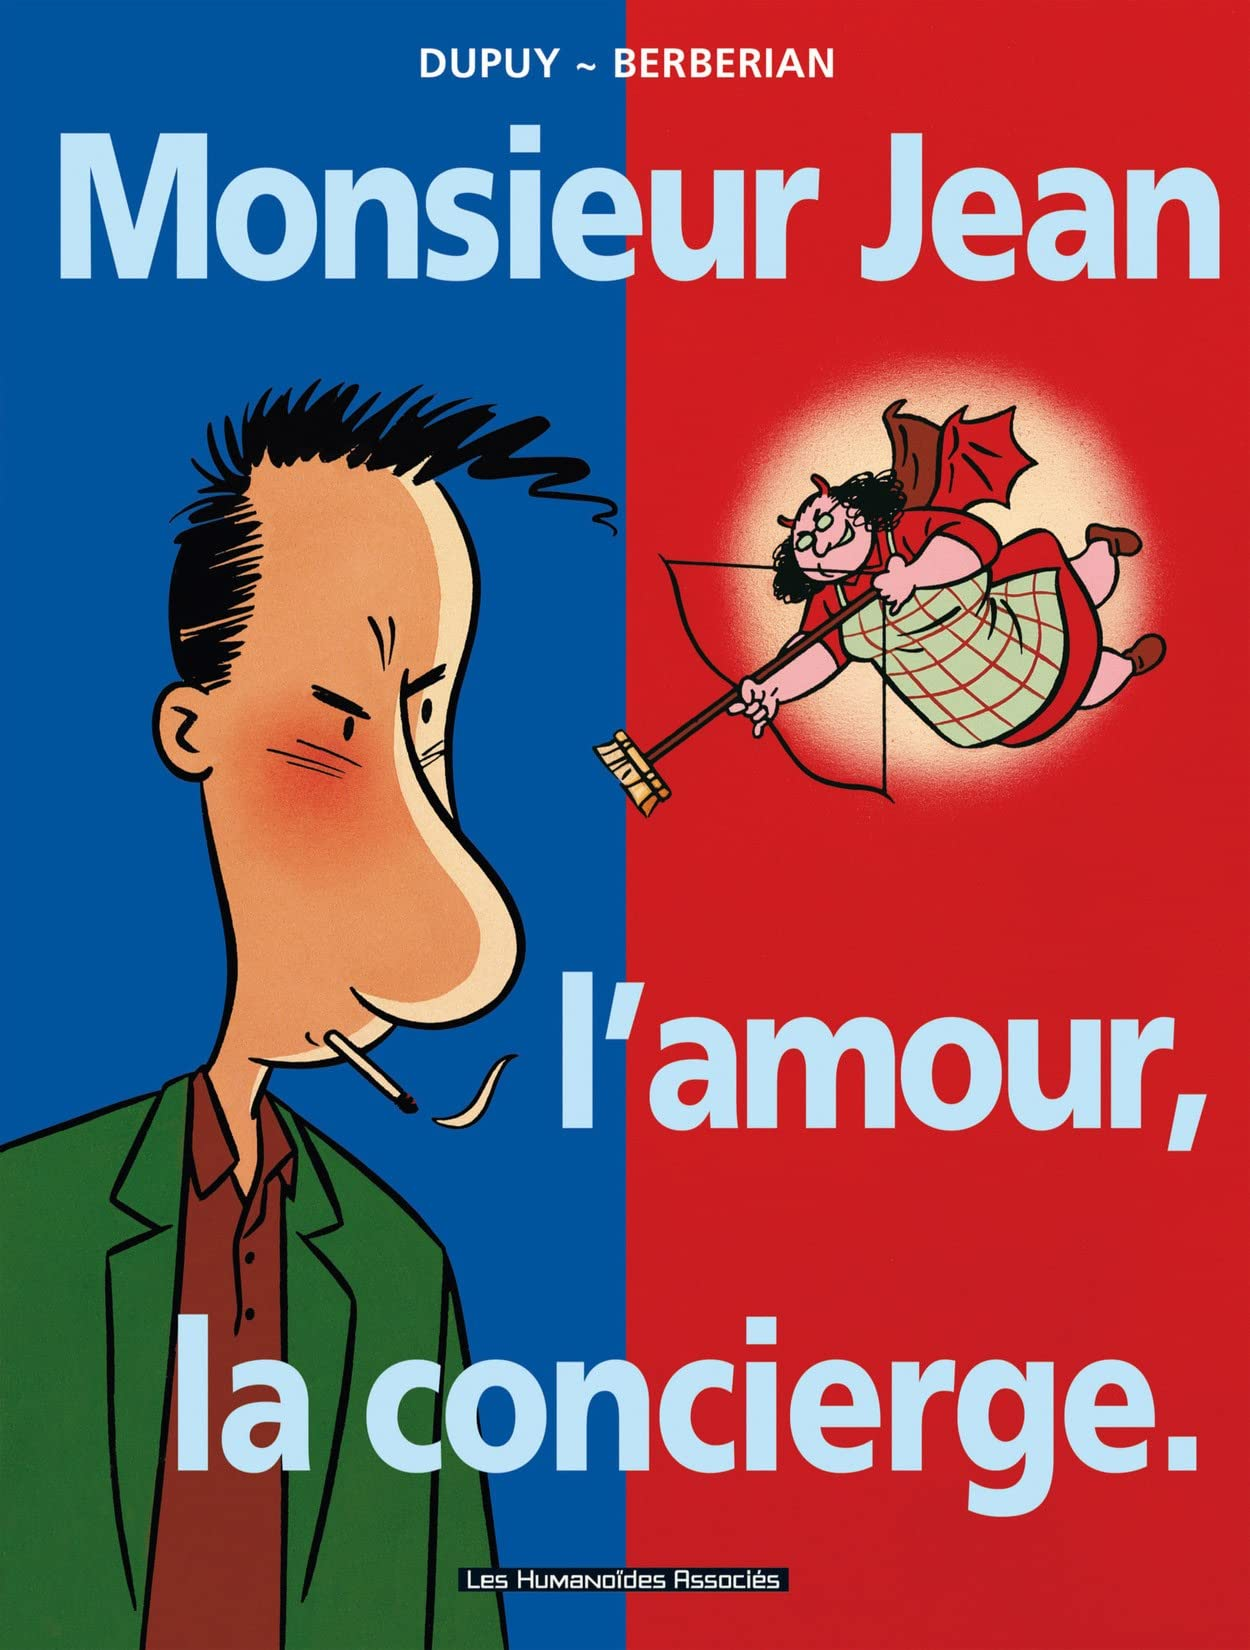 Monsieur Jean Vol. 1: Monsieur Jean, l'amour, la concierge